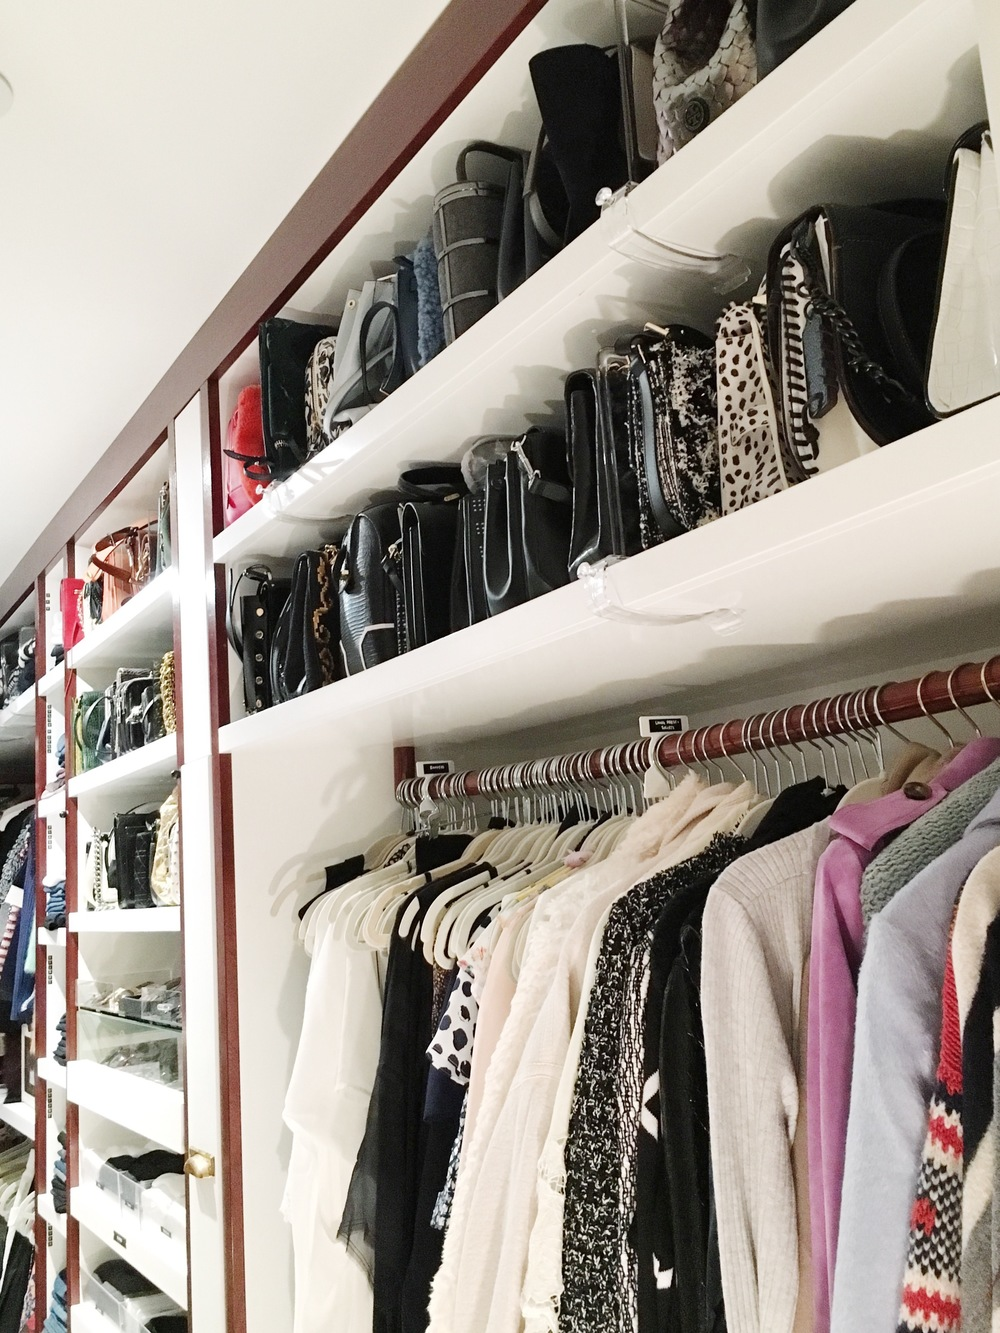 On the right: Coats and long dresses. The top shelf holds all the large purses organized by color and separated with acrylic shelf dividers.